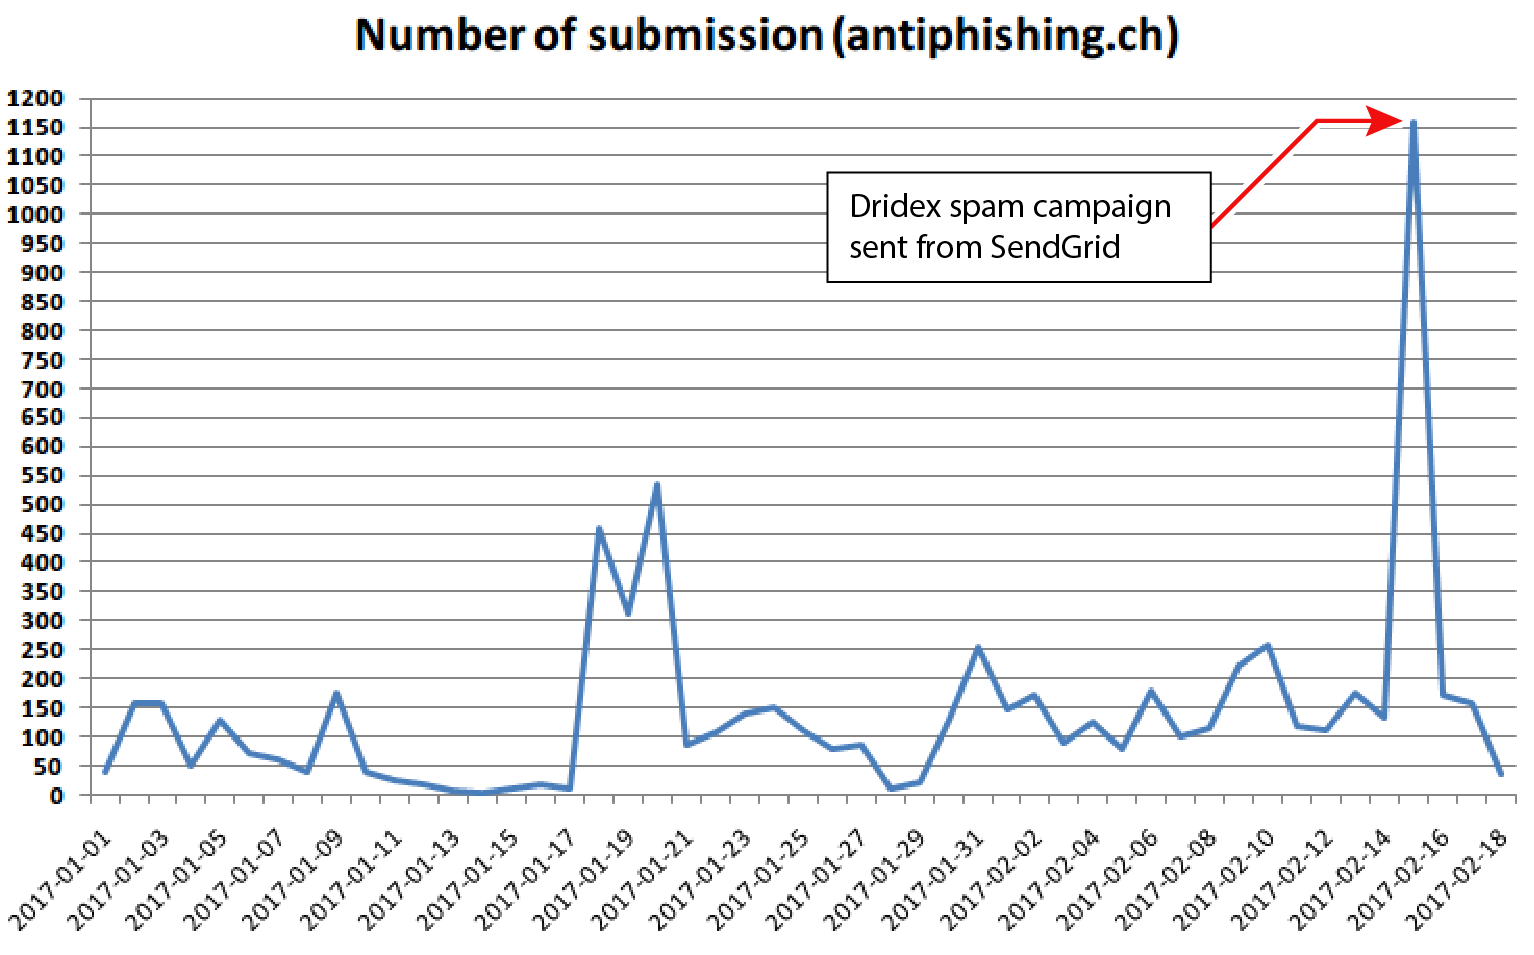 Number of submissions to antiphishing.ch